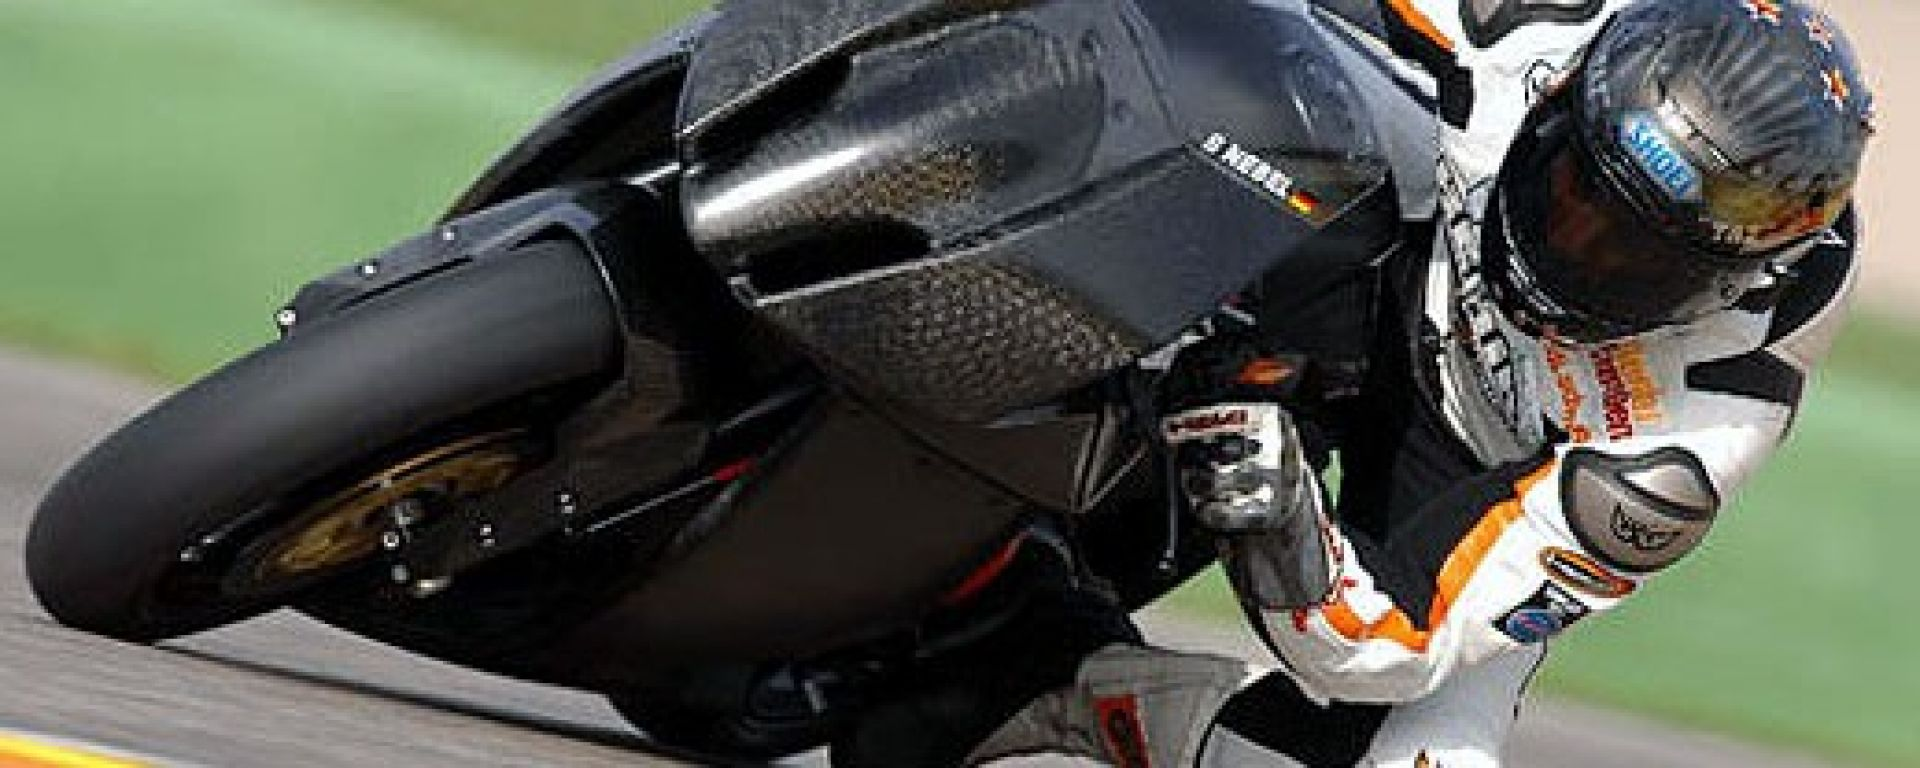 KTM debutta in Superbike